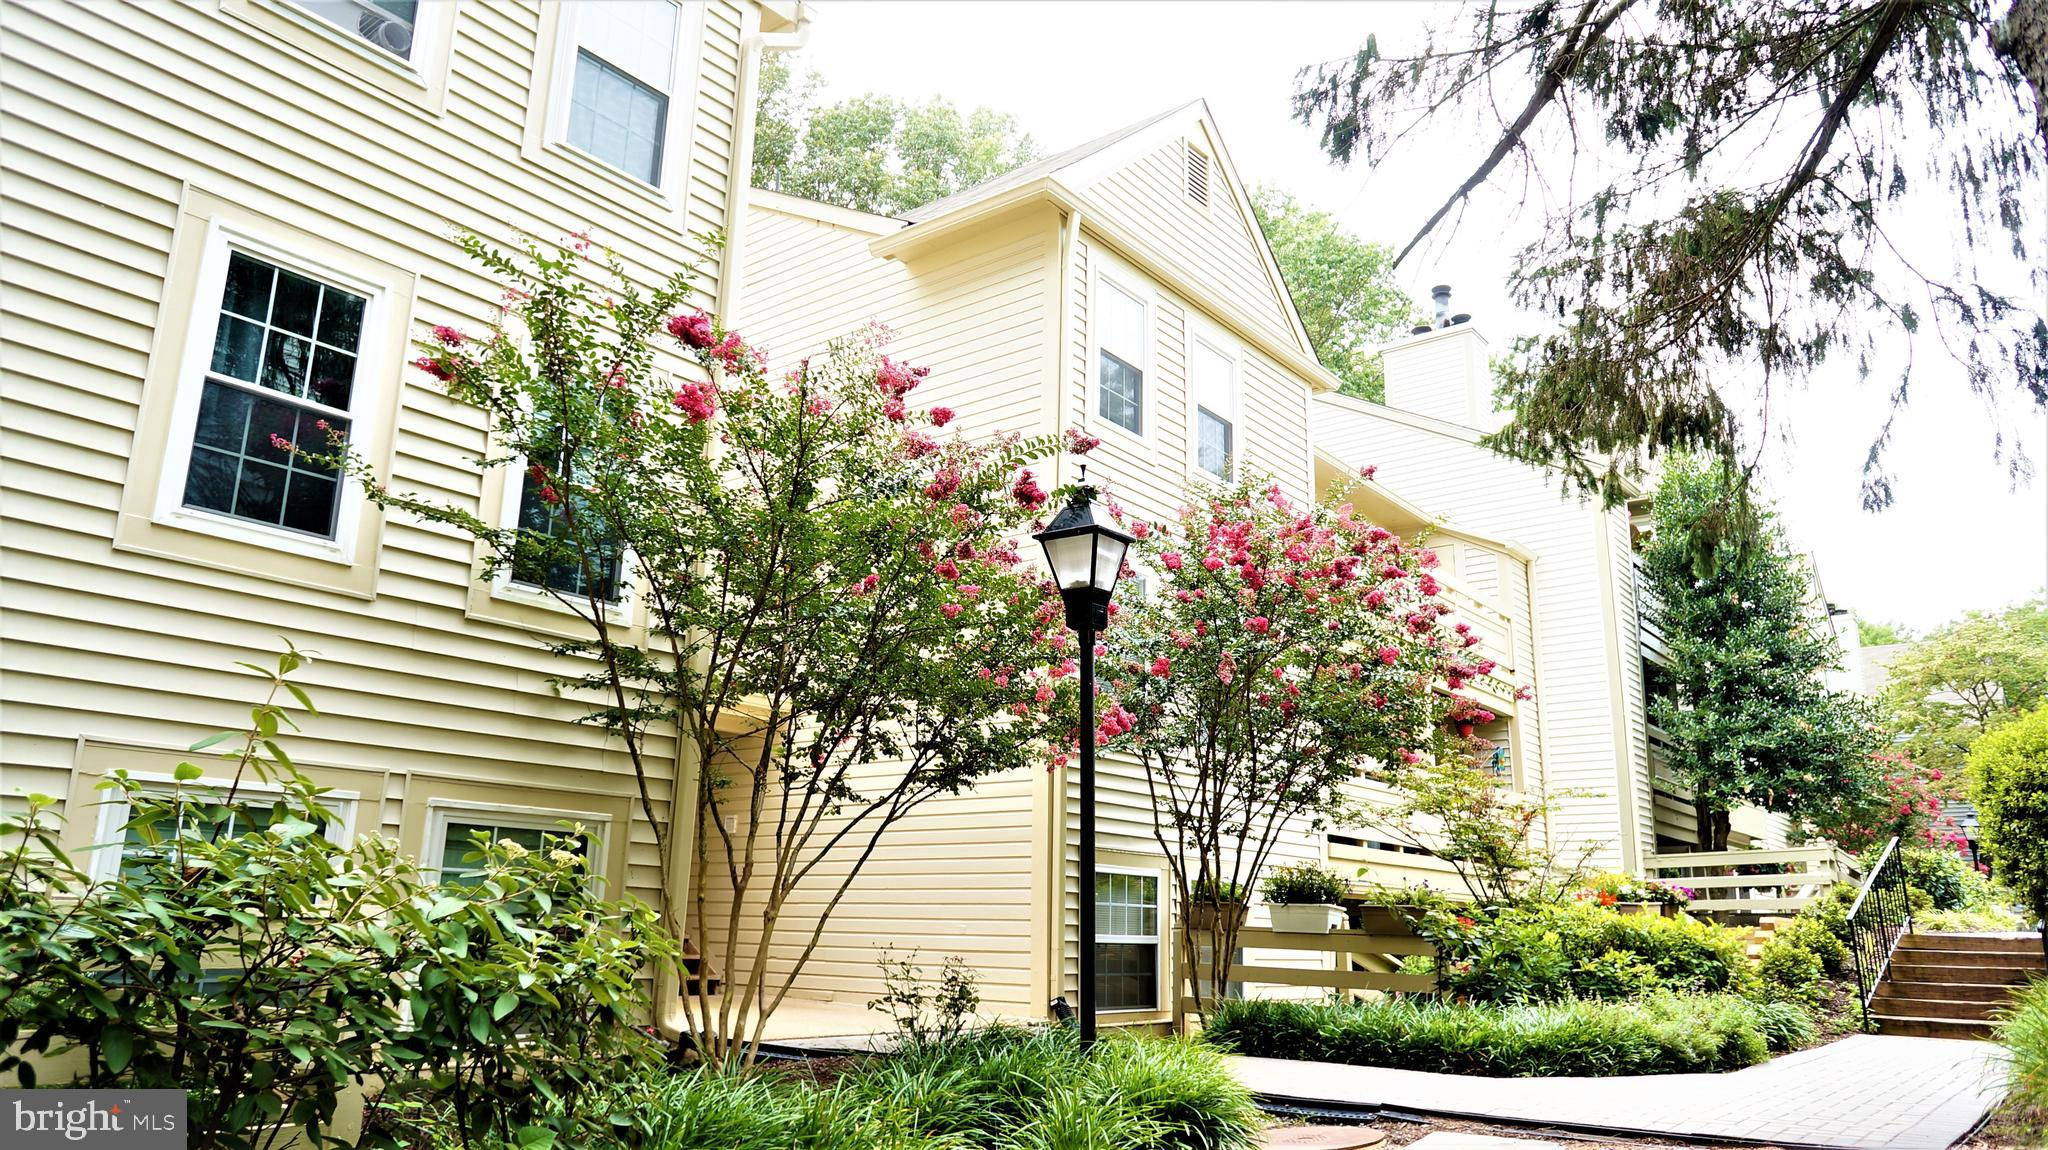 2233-L Lovedale Lane, Reston, VA 20191 now has a new price of $365,000!